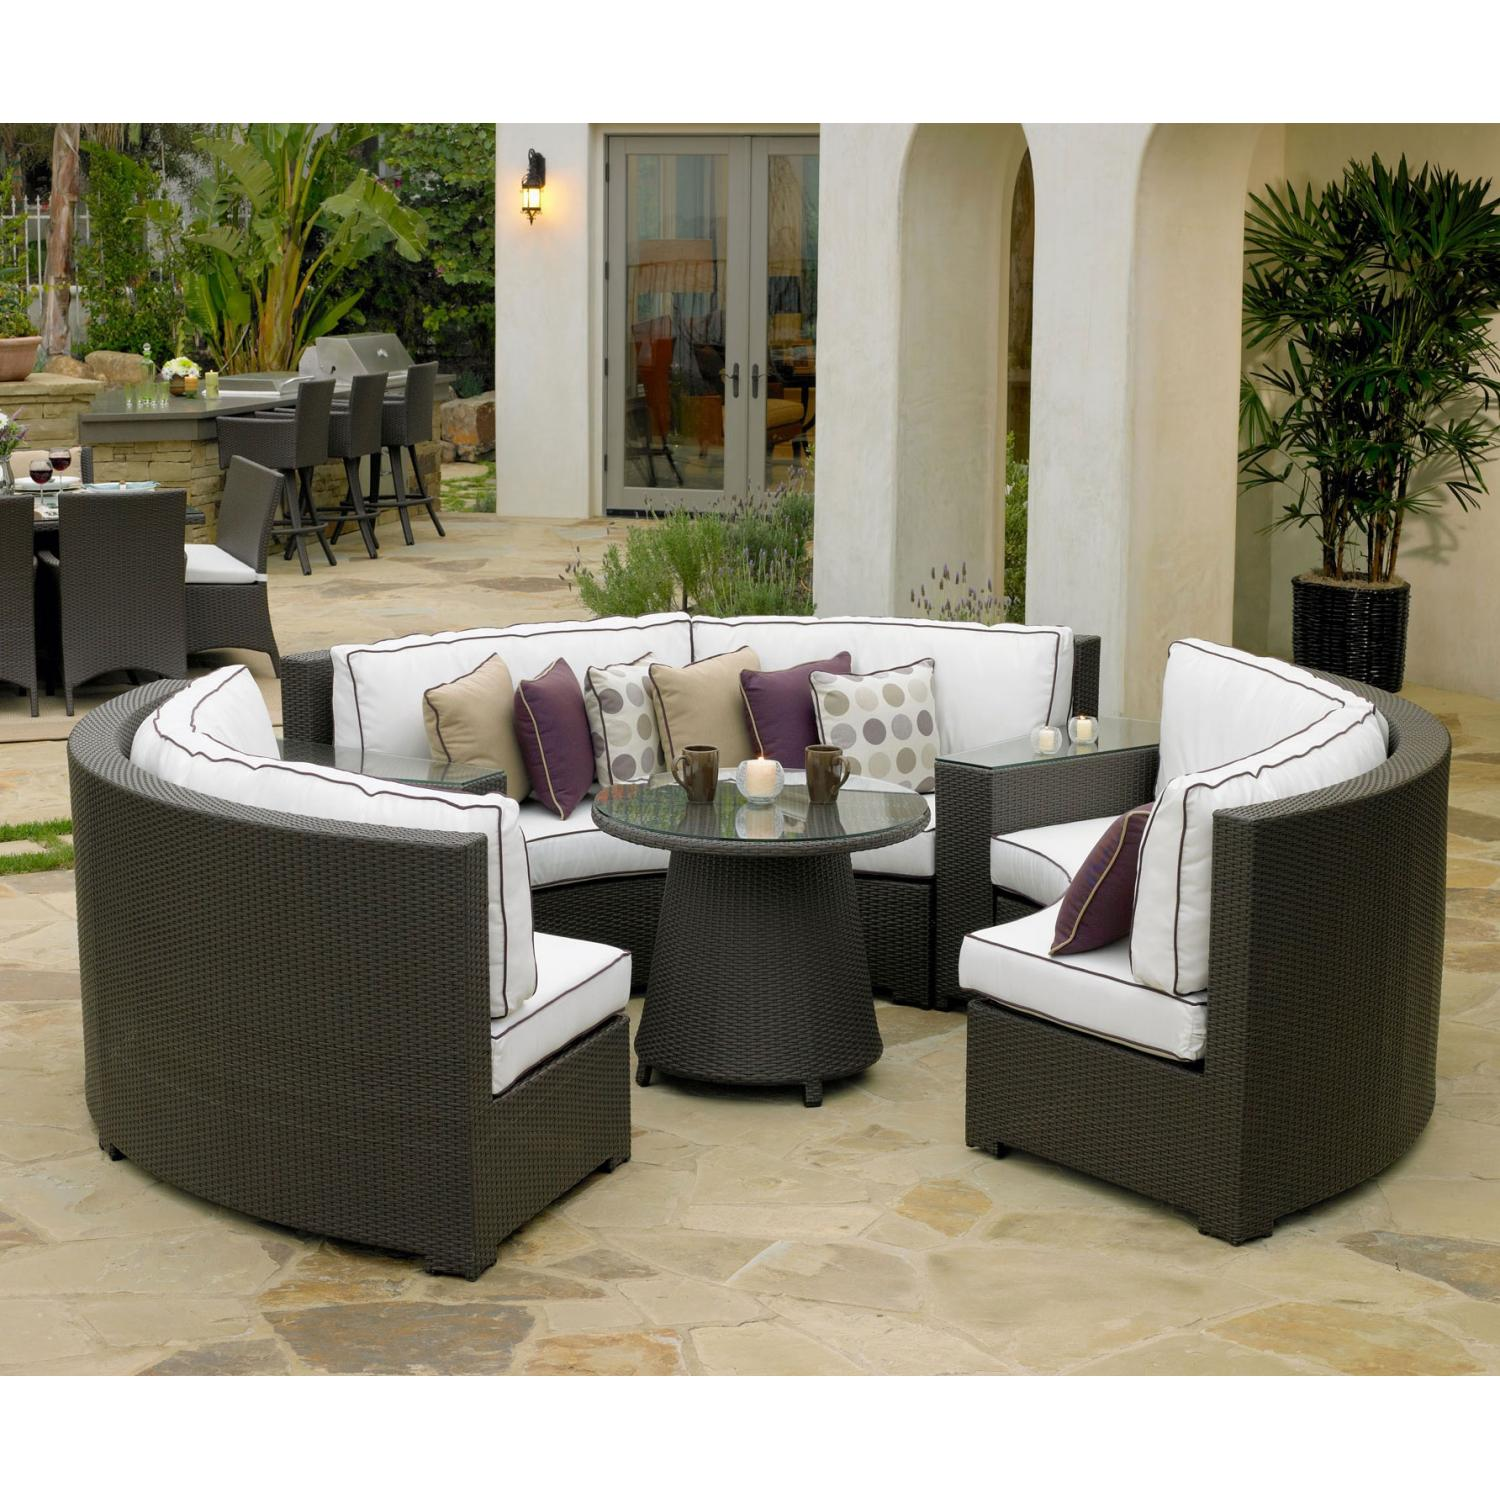 North Cape Melrose 6 Pc Chat Set W/ Table